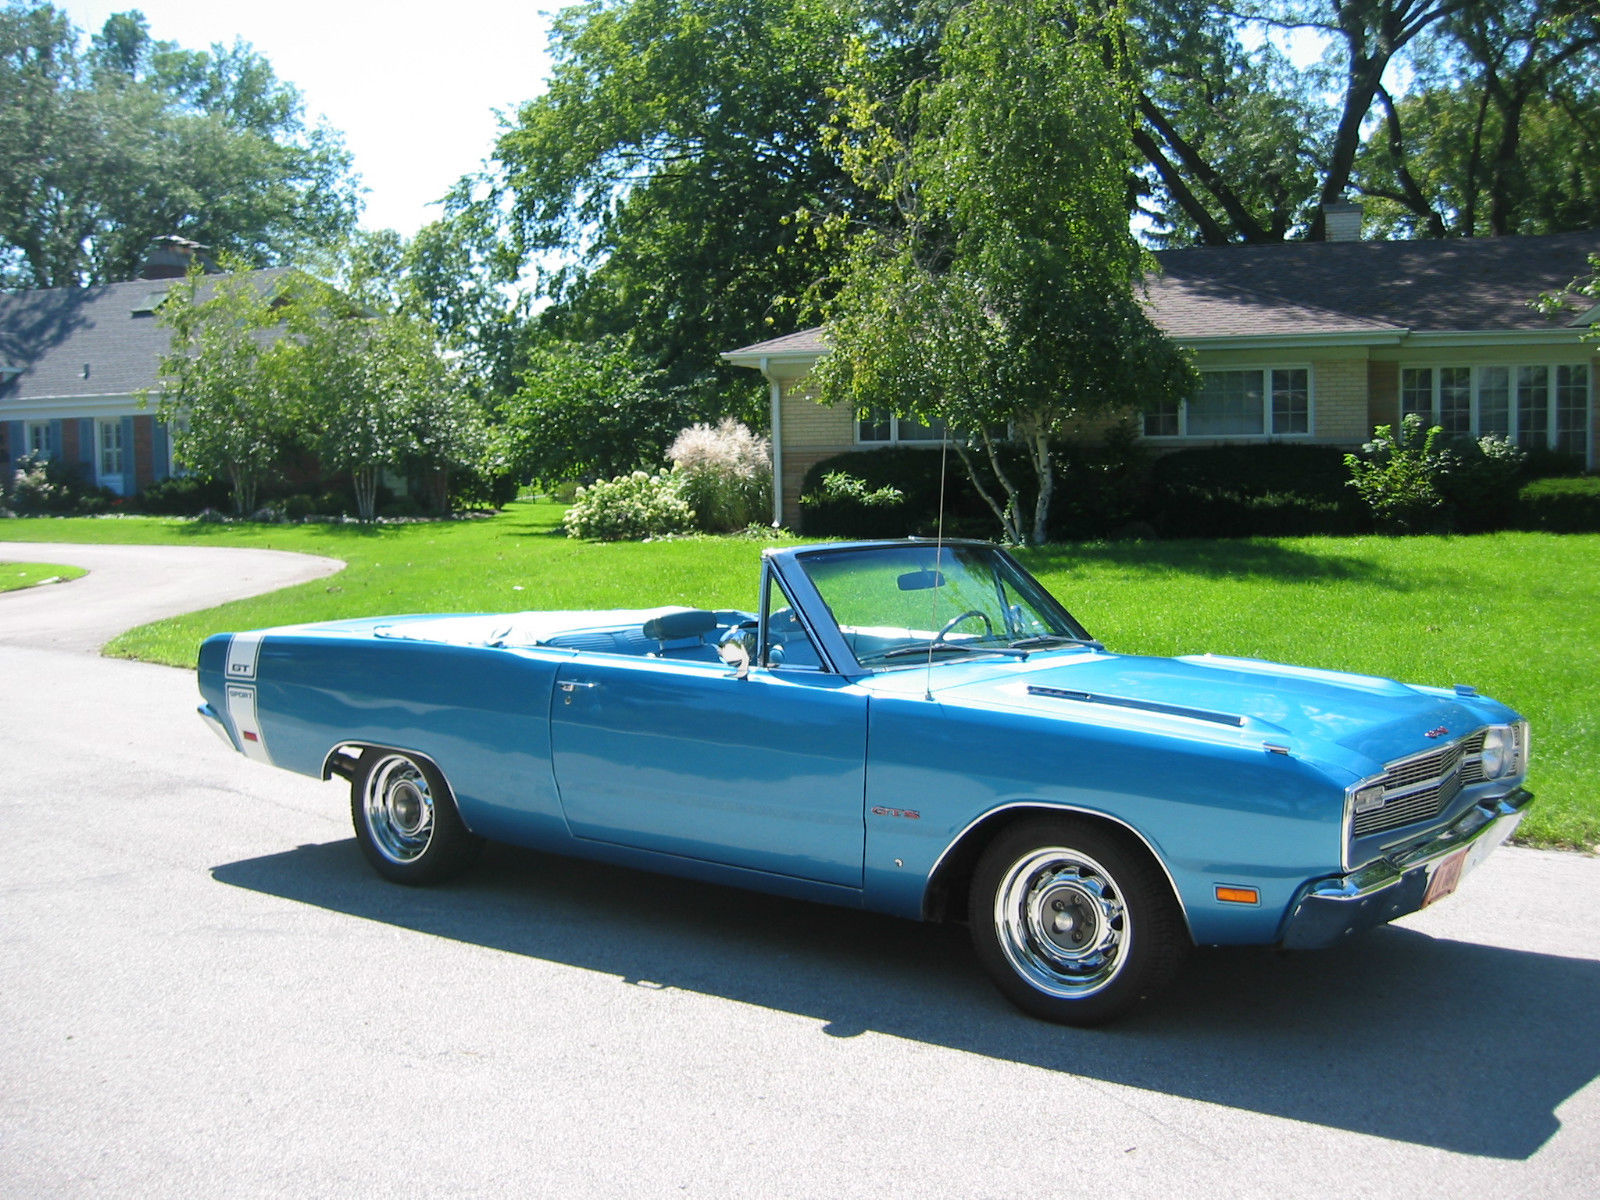 1969 Dodge Dart Gts Convertible Hp383 Rare 1 Of 39 1 Of 1 W23 K H Recall Wheels For Sale In River Falls Wisconsin United States